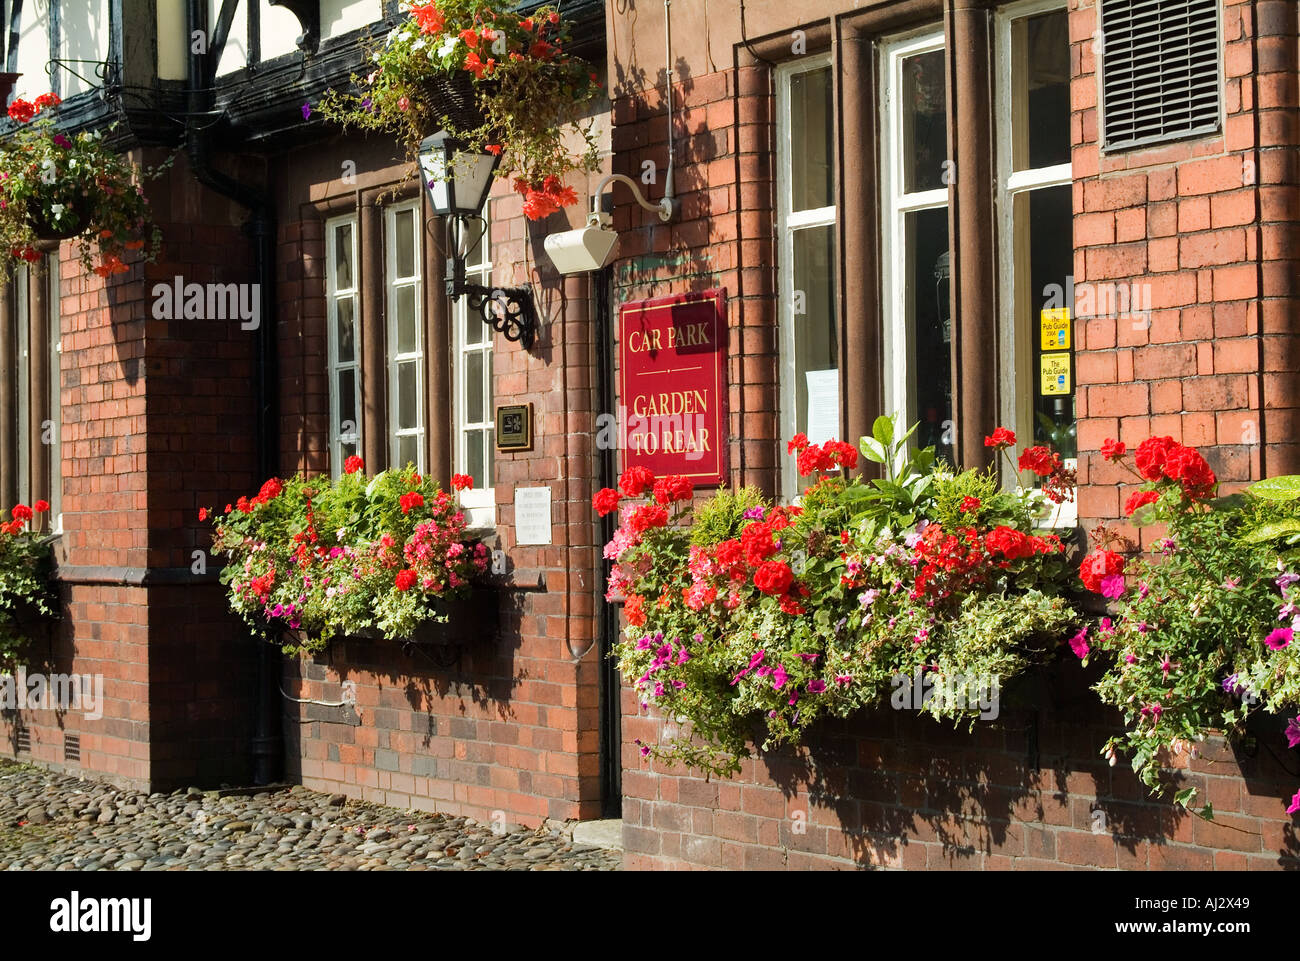 ring o bells Old English public house in Daresbury Cheshire The village where the author of Alice in Wonderland Lewis Carrol - Stock Image